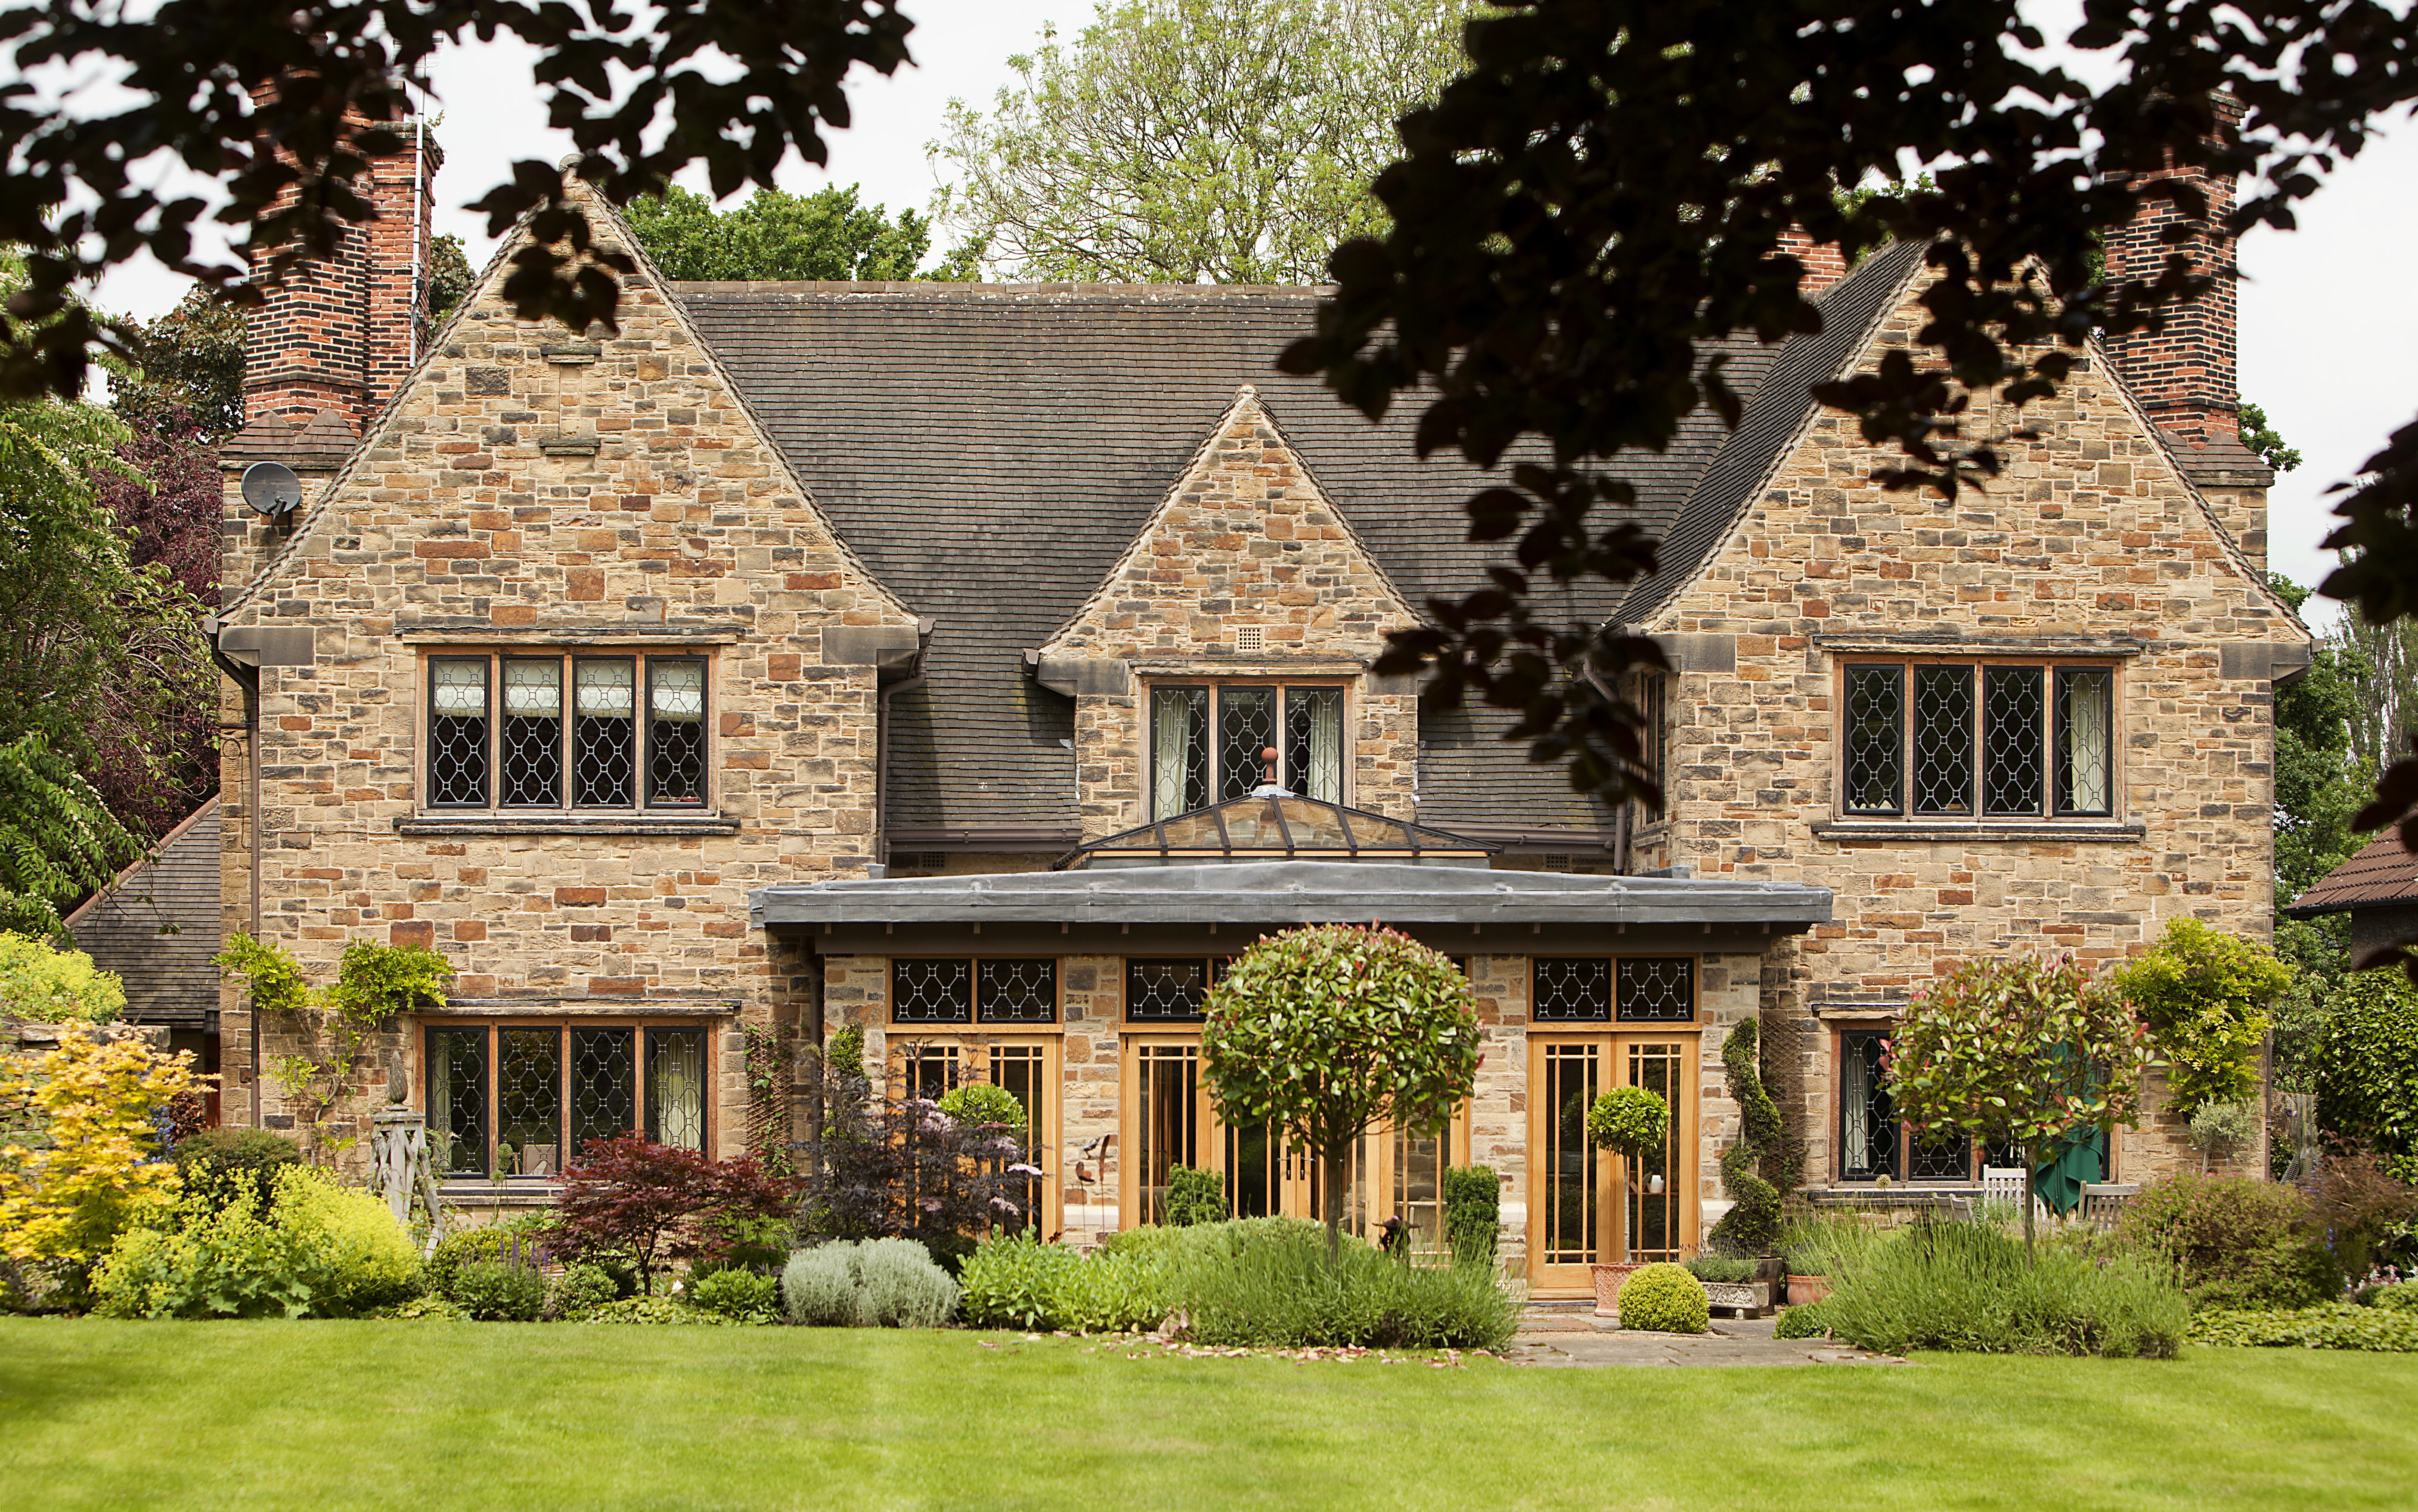 Stone fronted house with leaded metal windows